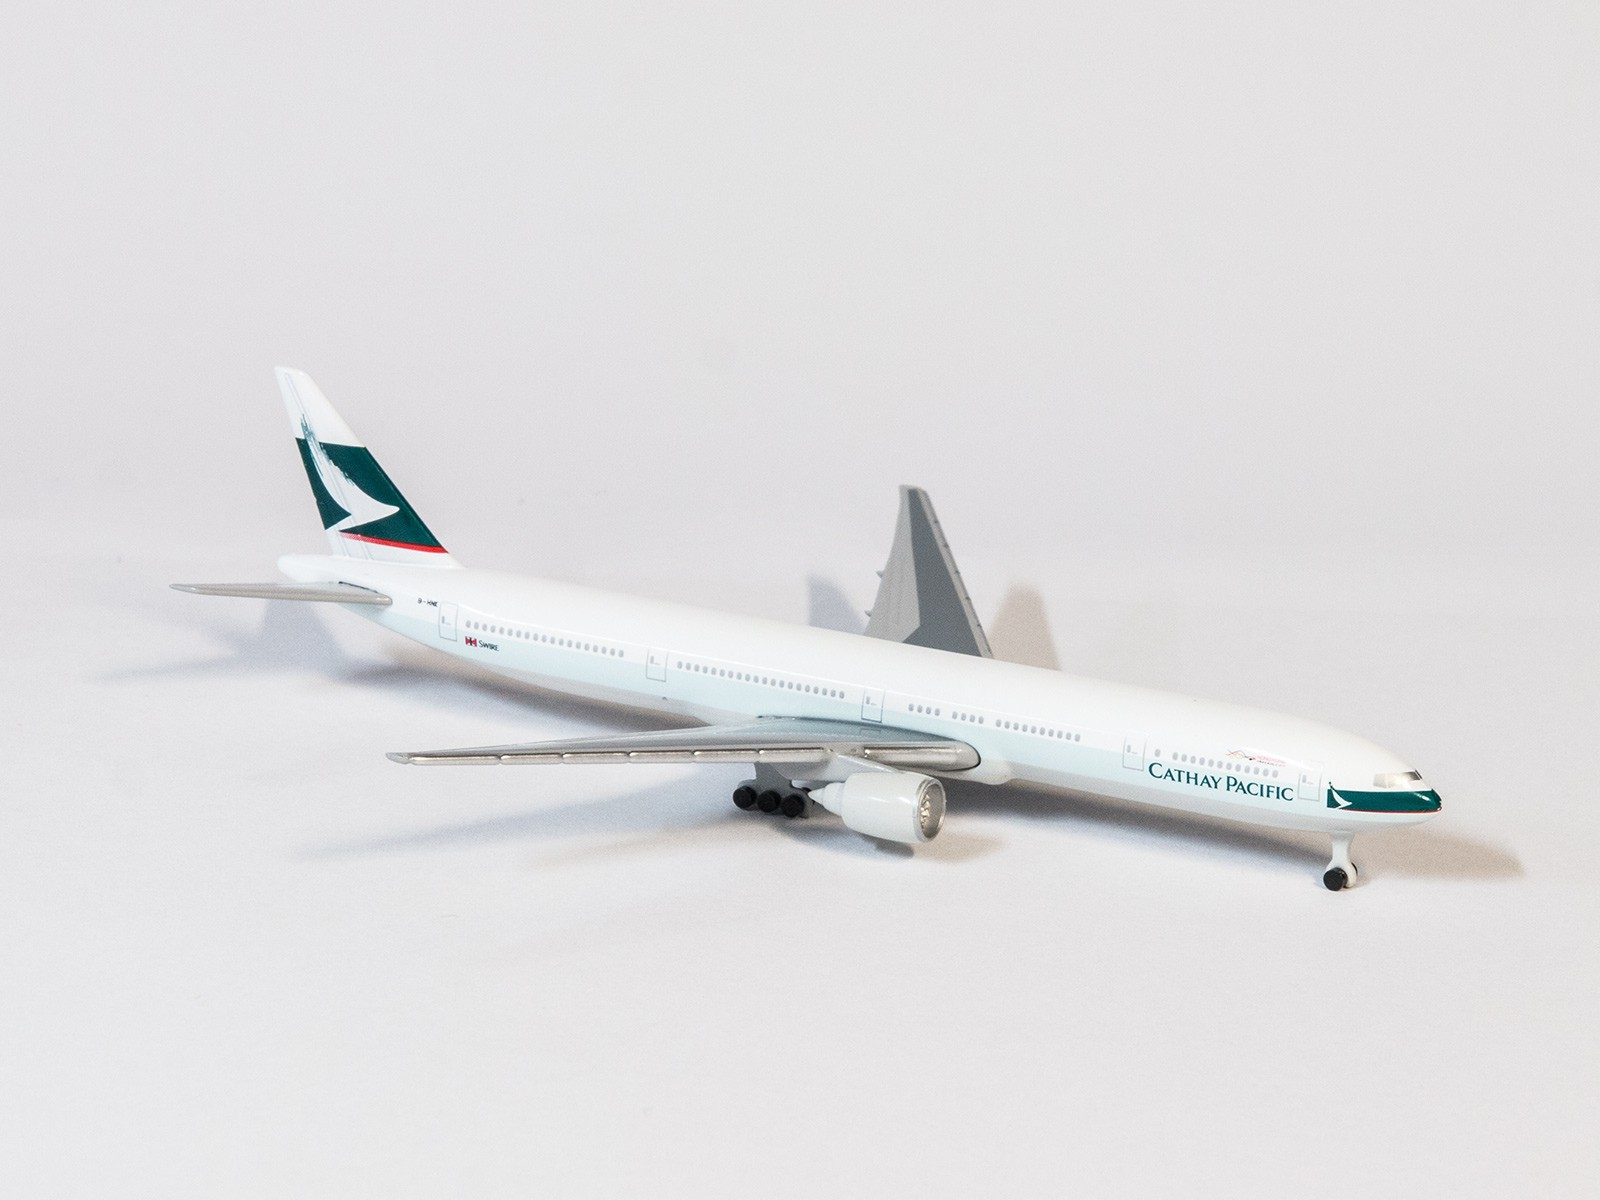 Schuco 3551679 Boeing 777-300 Catay Pacific in 1:600